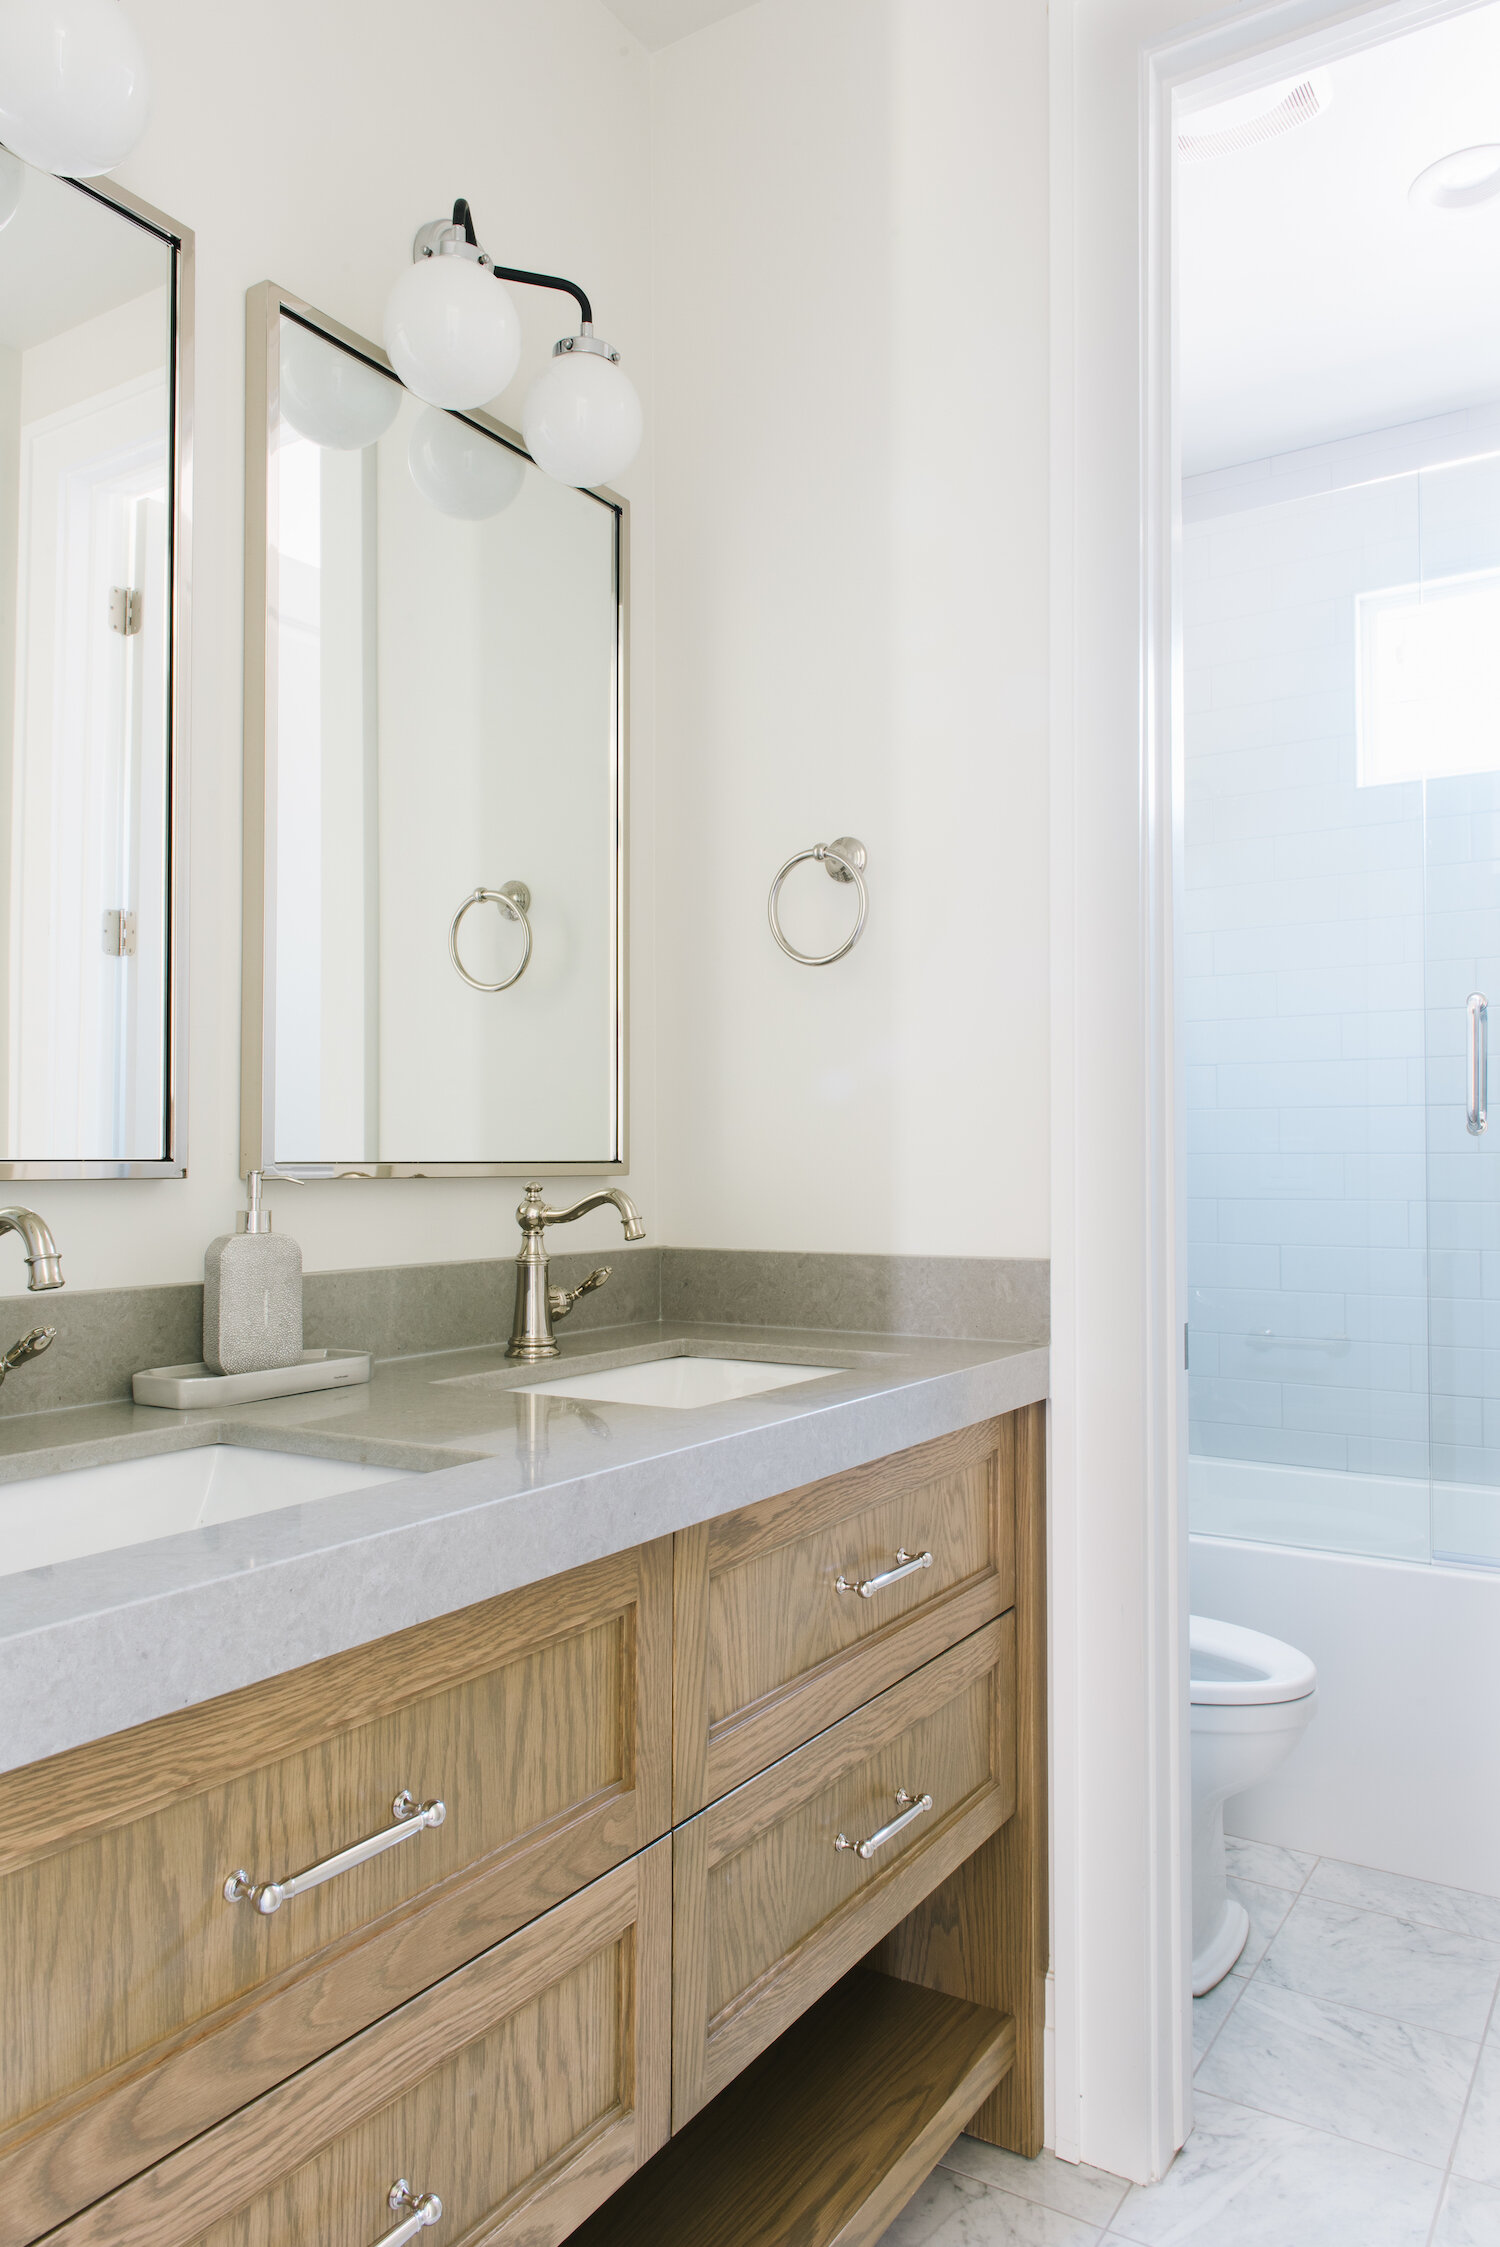 Tips For Designing Small Bathrooms For Multi Users Mount Valley Project Tami Faulkner Design